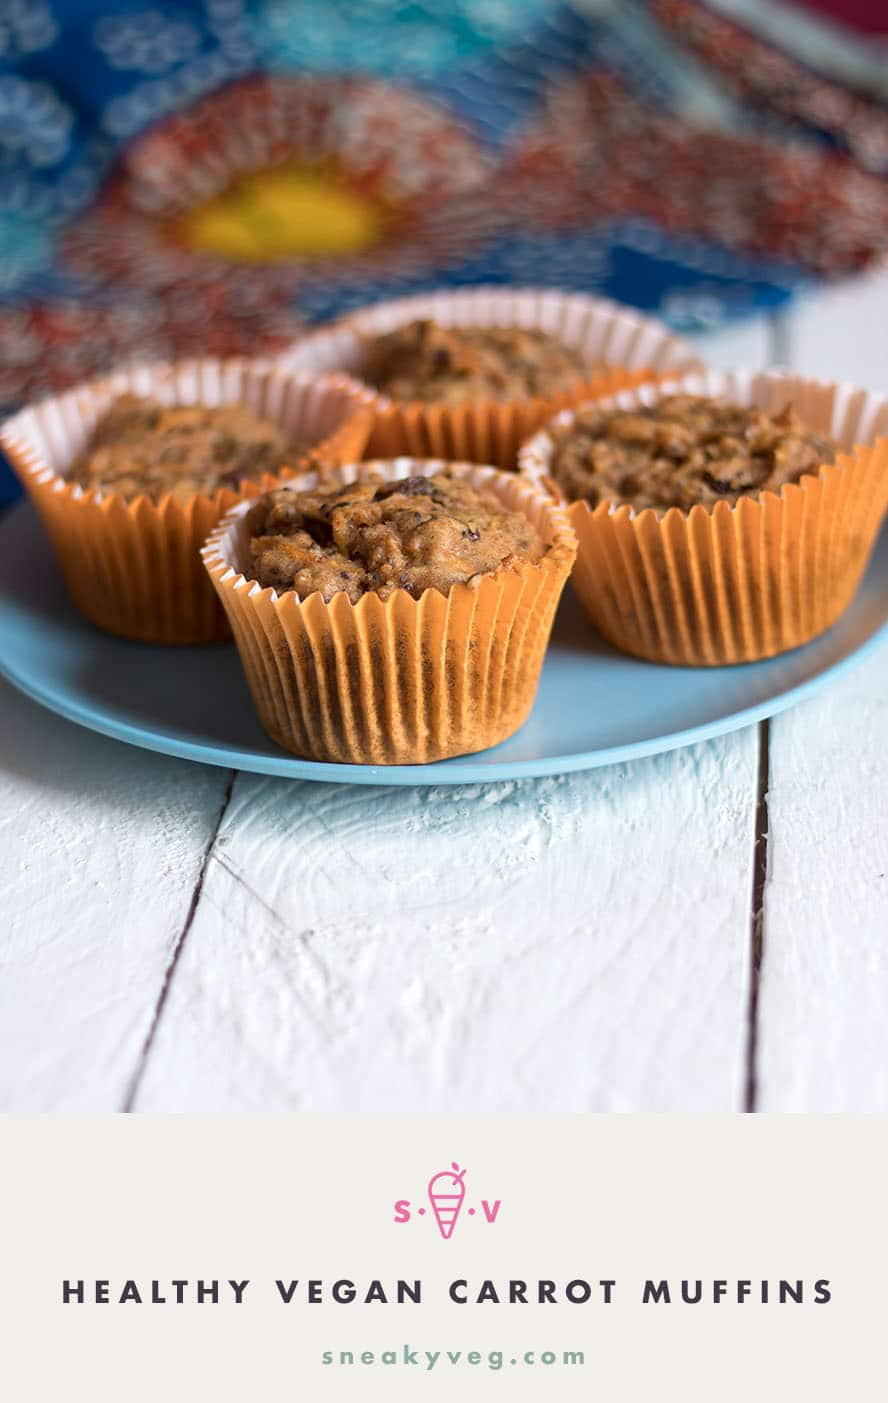 These healthy carrot muffins will go down a treat with anyone looking for a delicious, filling bake that is low in refined sugar. They're packed full of healthy ingredients and suitable for vegans